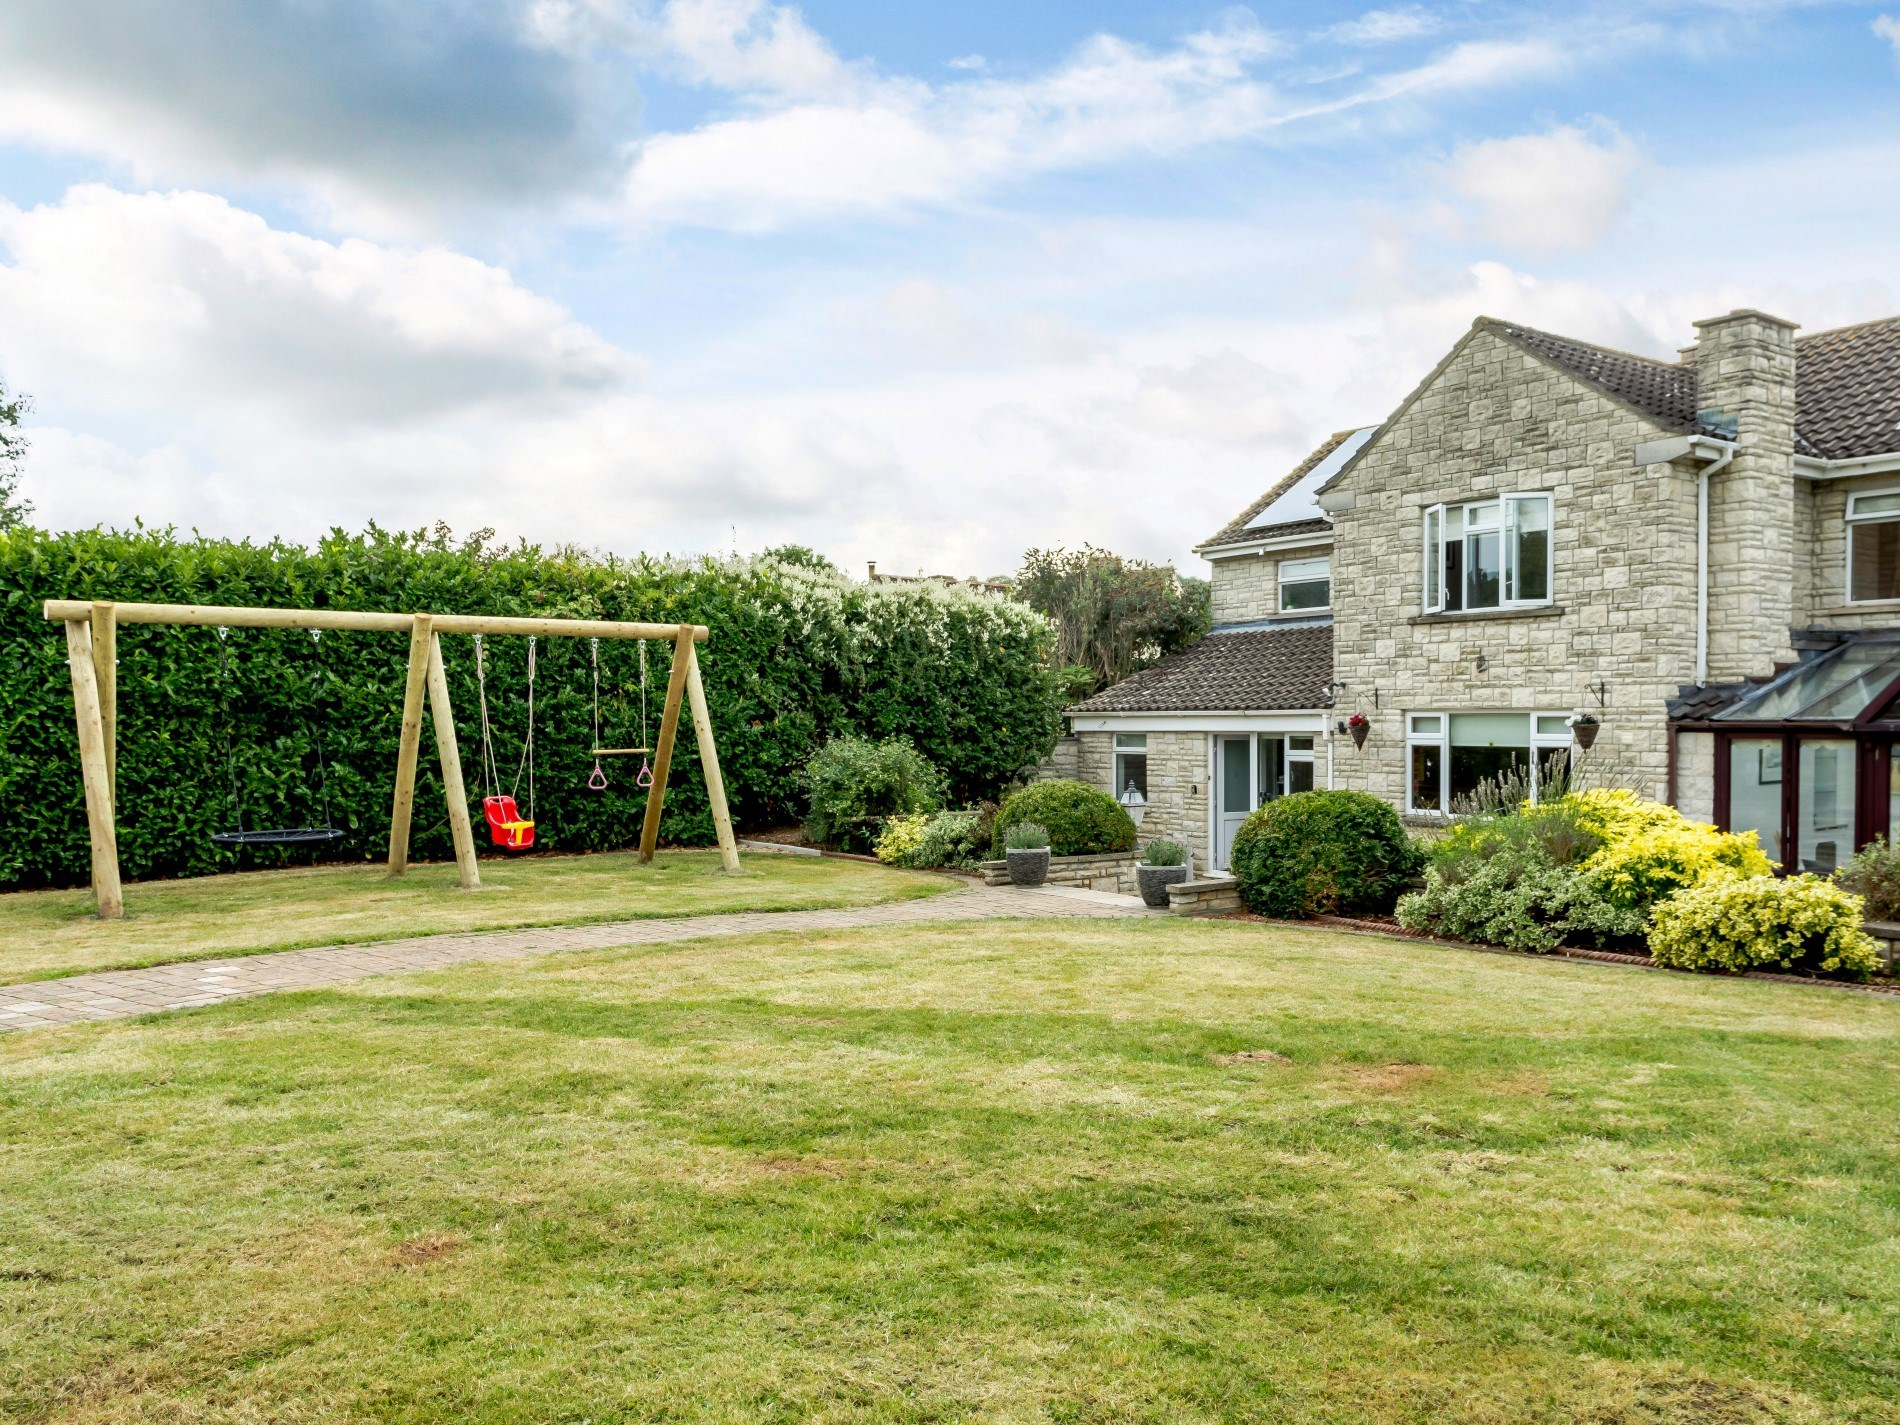 4 Bedroom Cottage in Somerton, Dorset and Somerset